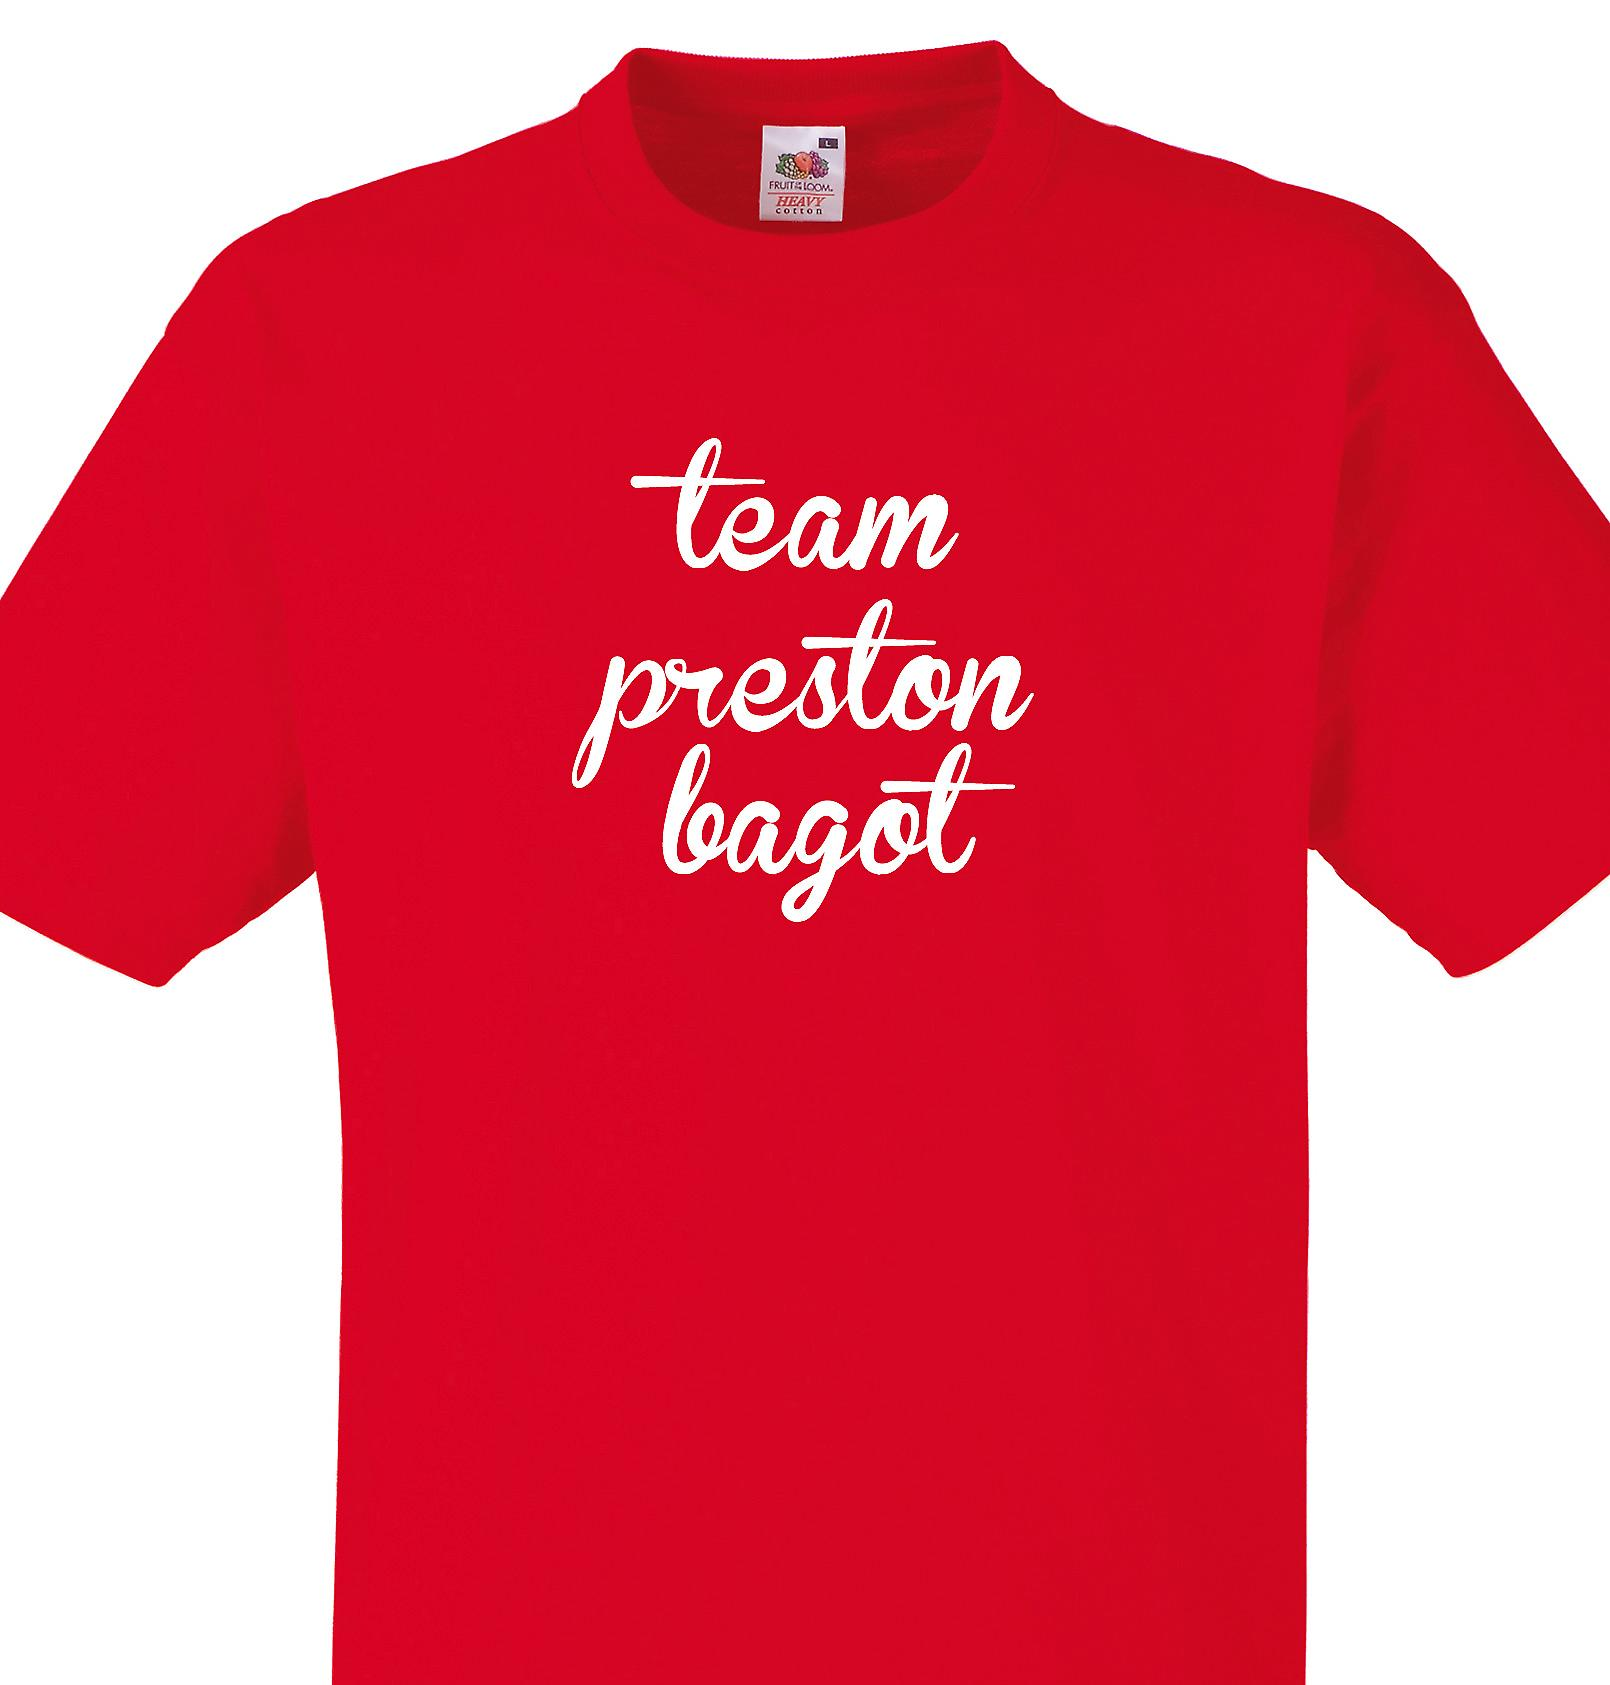 Team Preston bagot Red T shirt